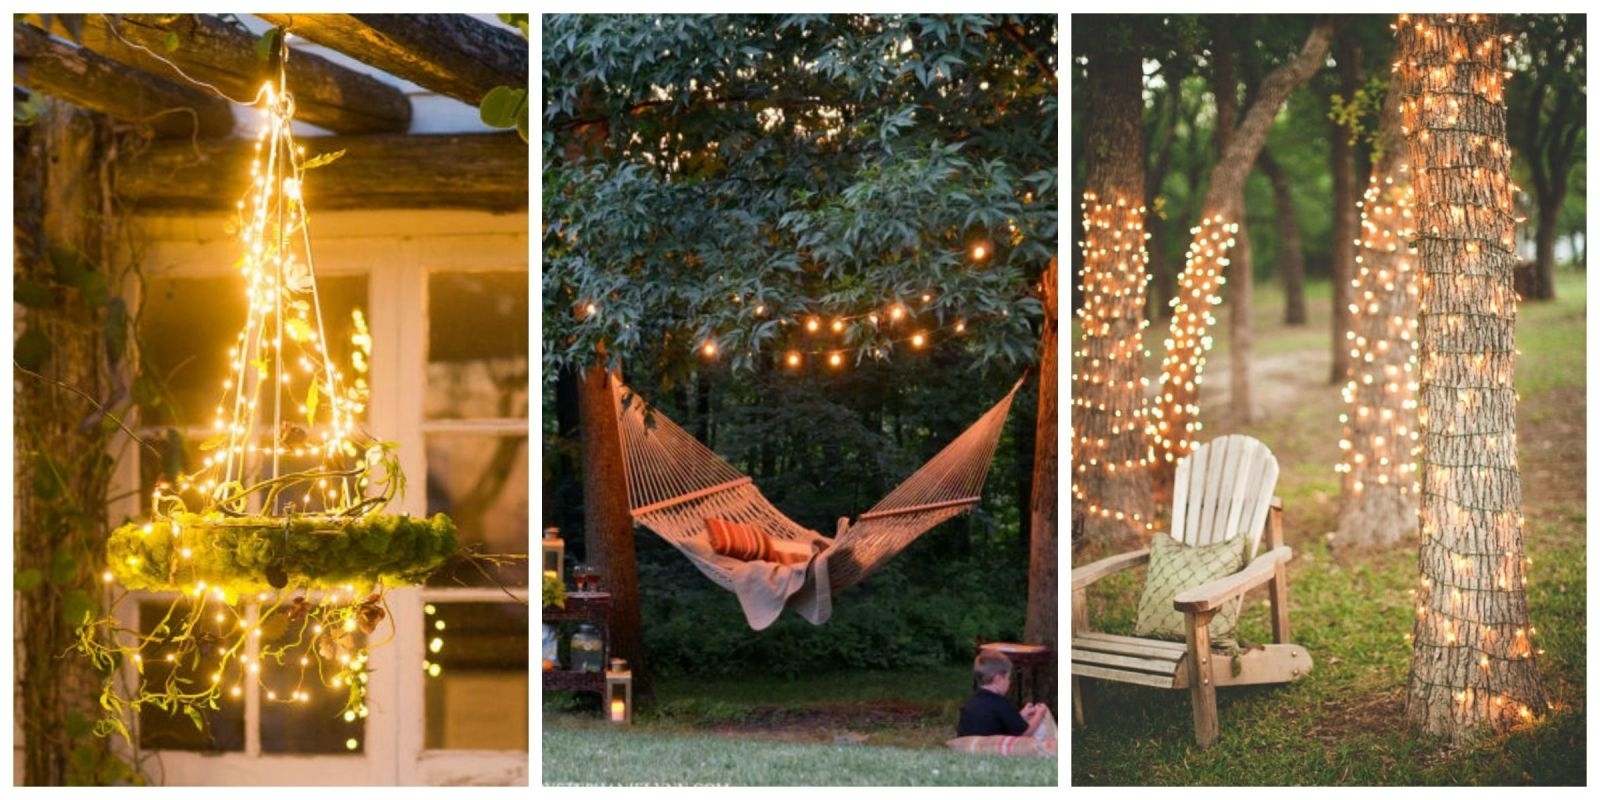 Backyard String Lights Pics Patio Led Porch Ideas Garden Outdoor With Regard To Garden And Outdoor String Lights (#4 of 15)